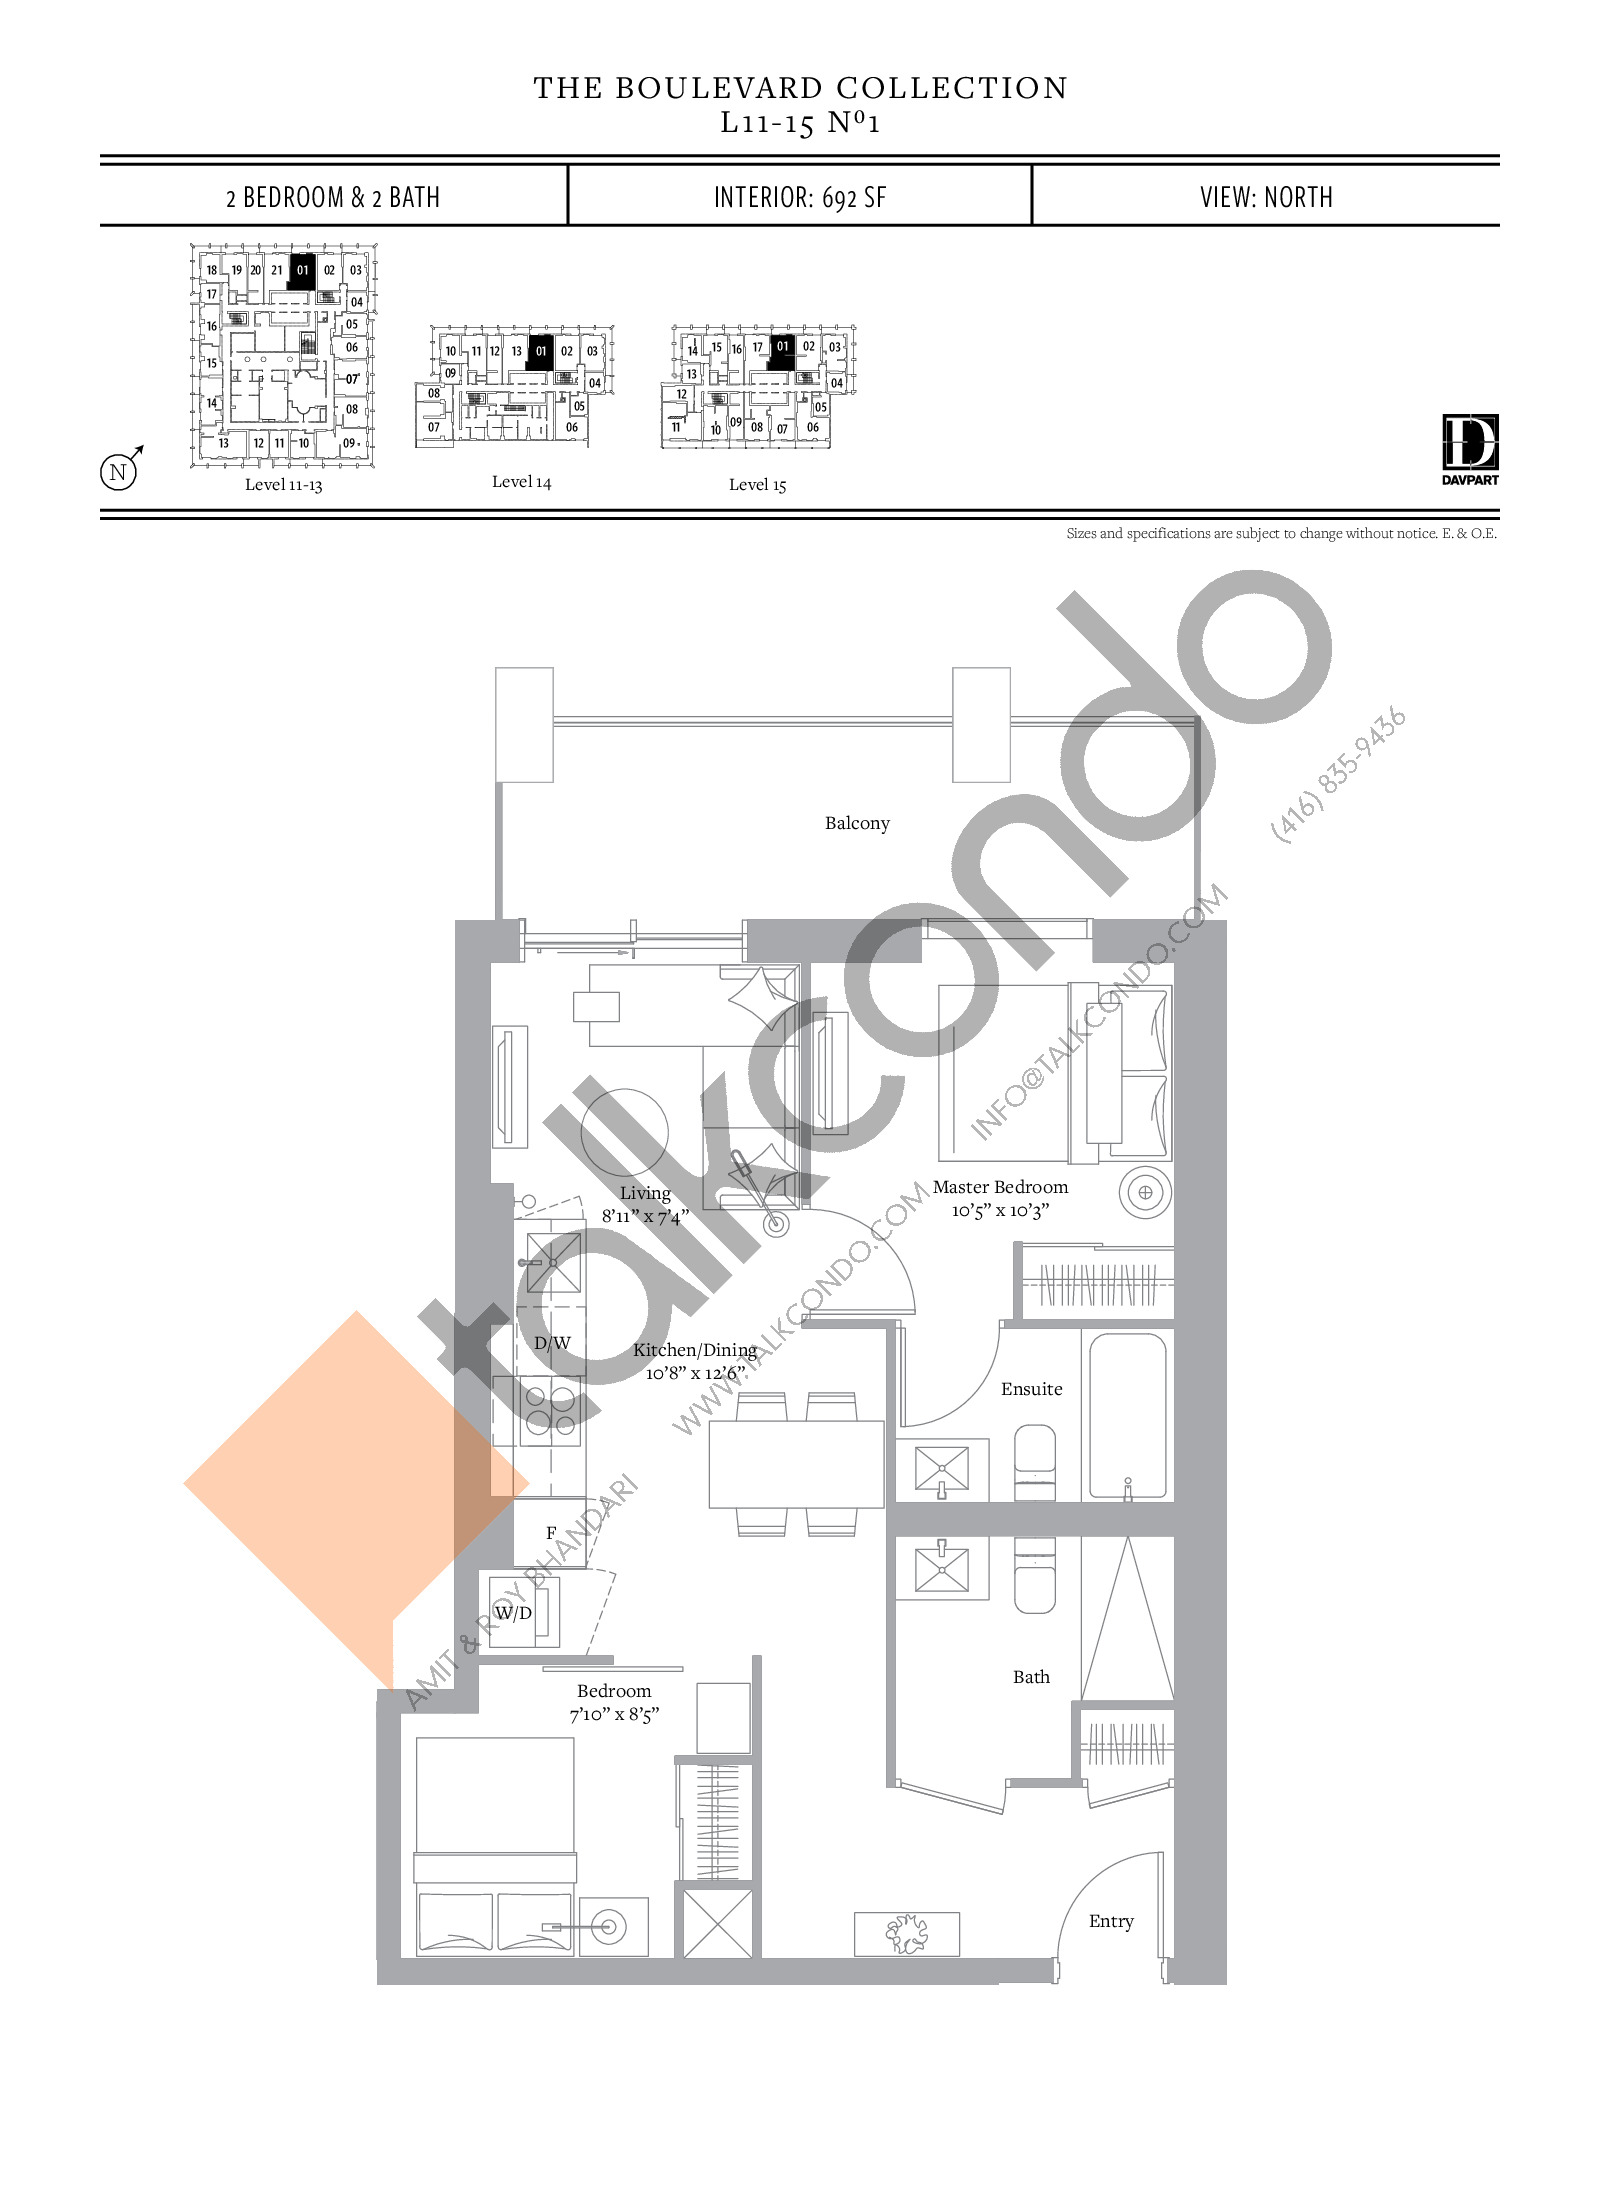 No 1 - The Boulevard Collection Floor Plan at The United Bldg. Condos - 692 sq.ft